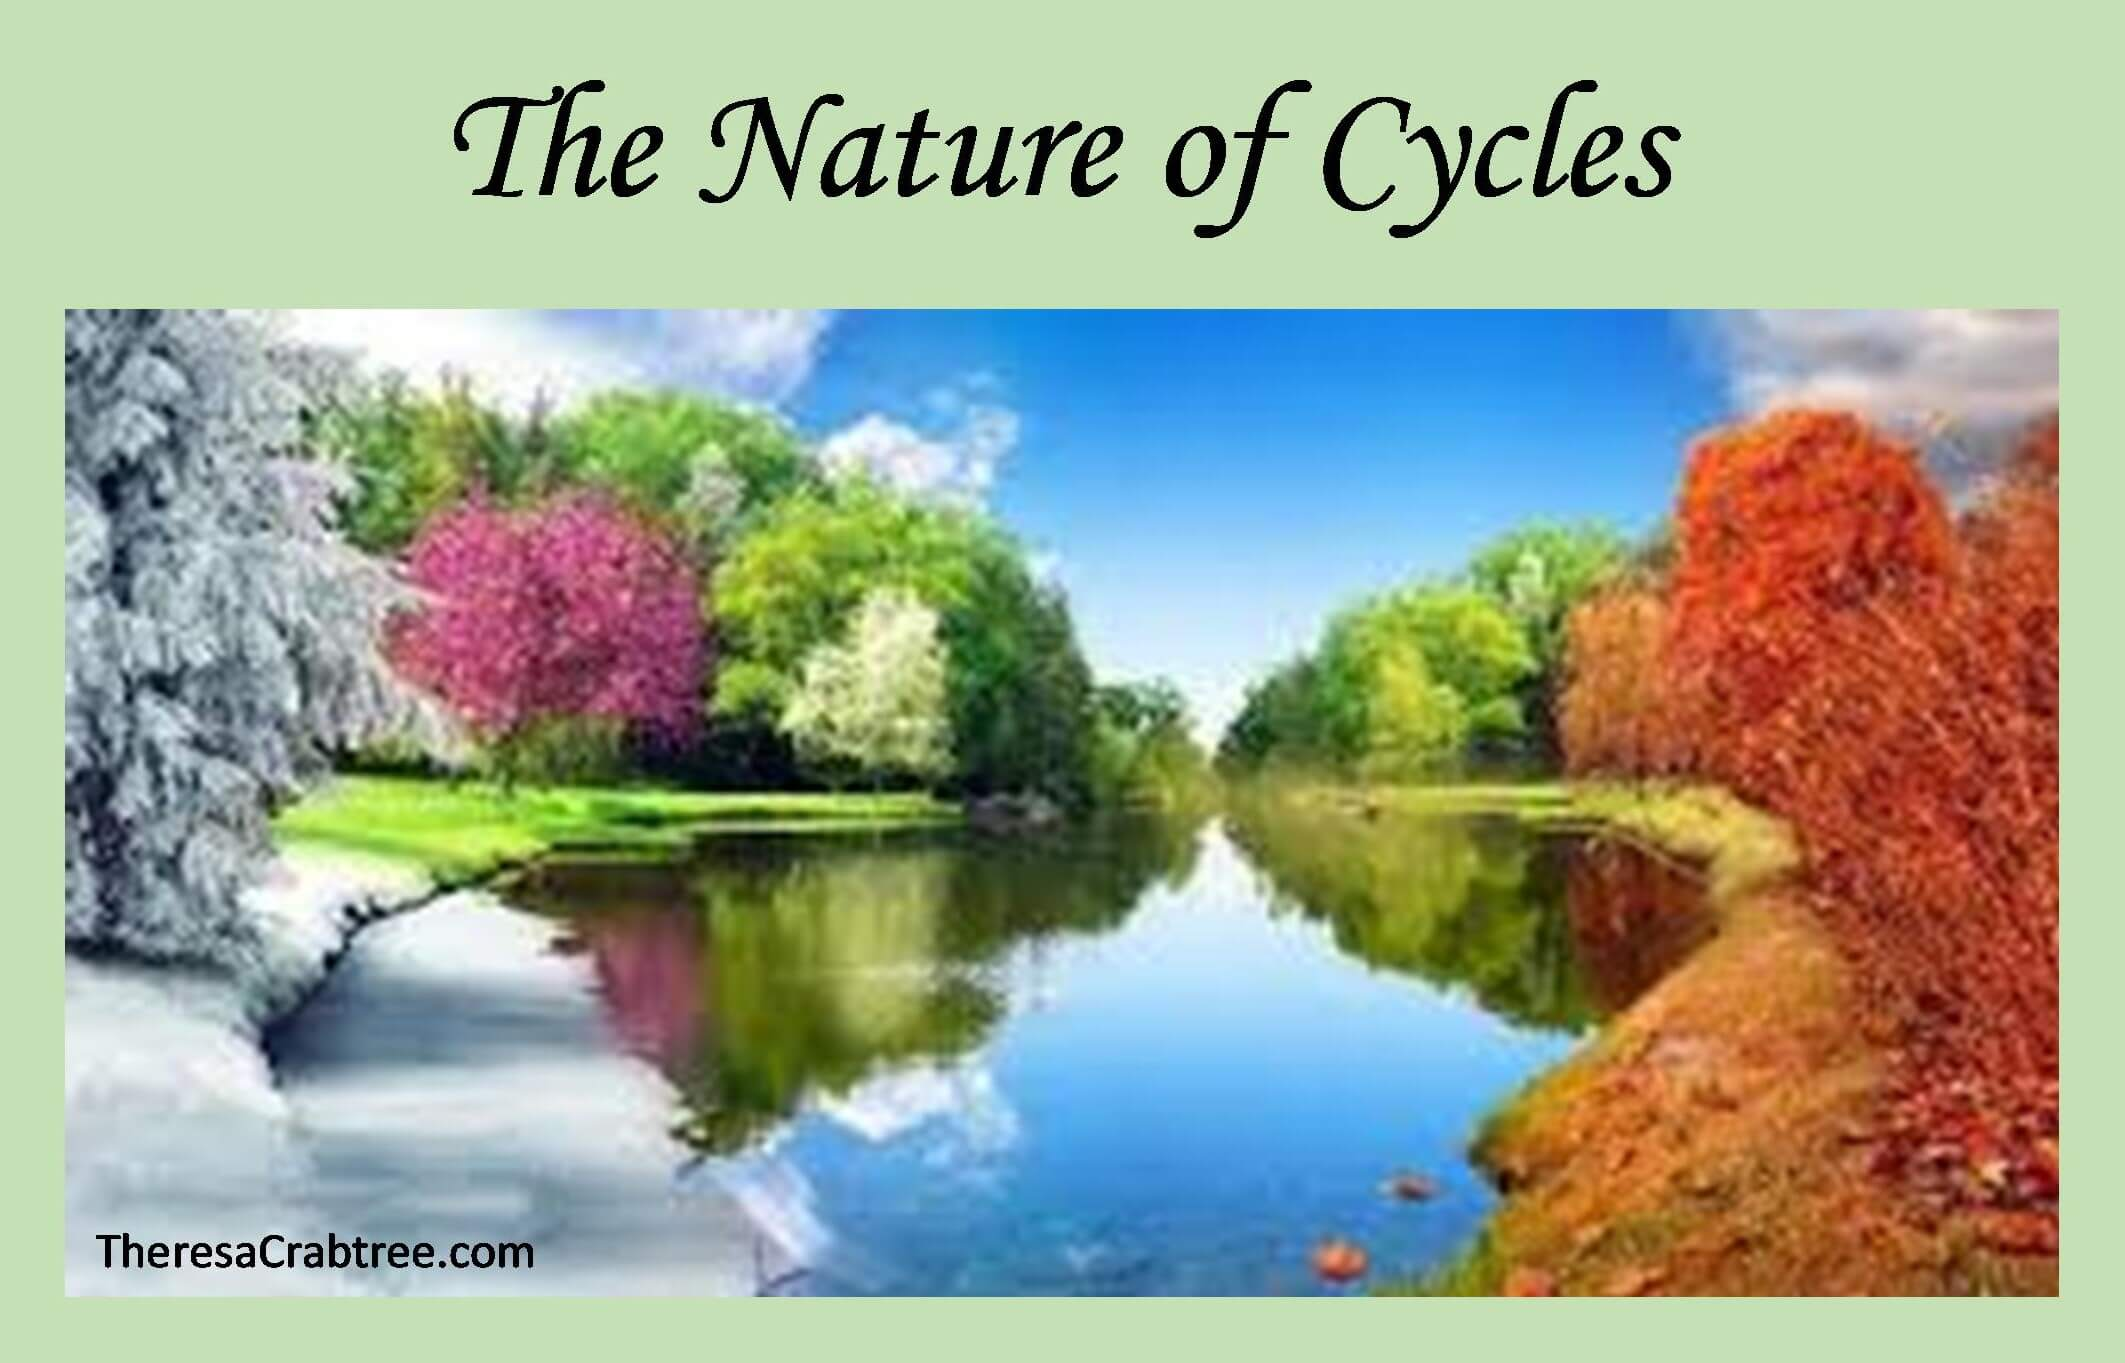 The Nature of Cycles